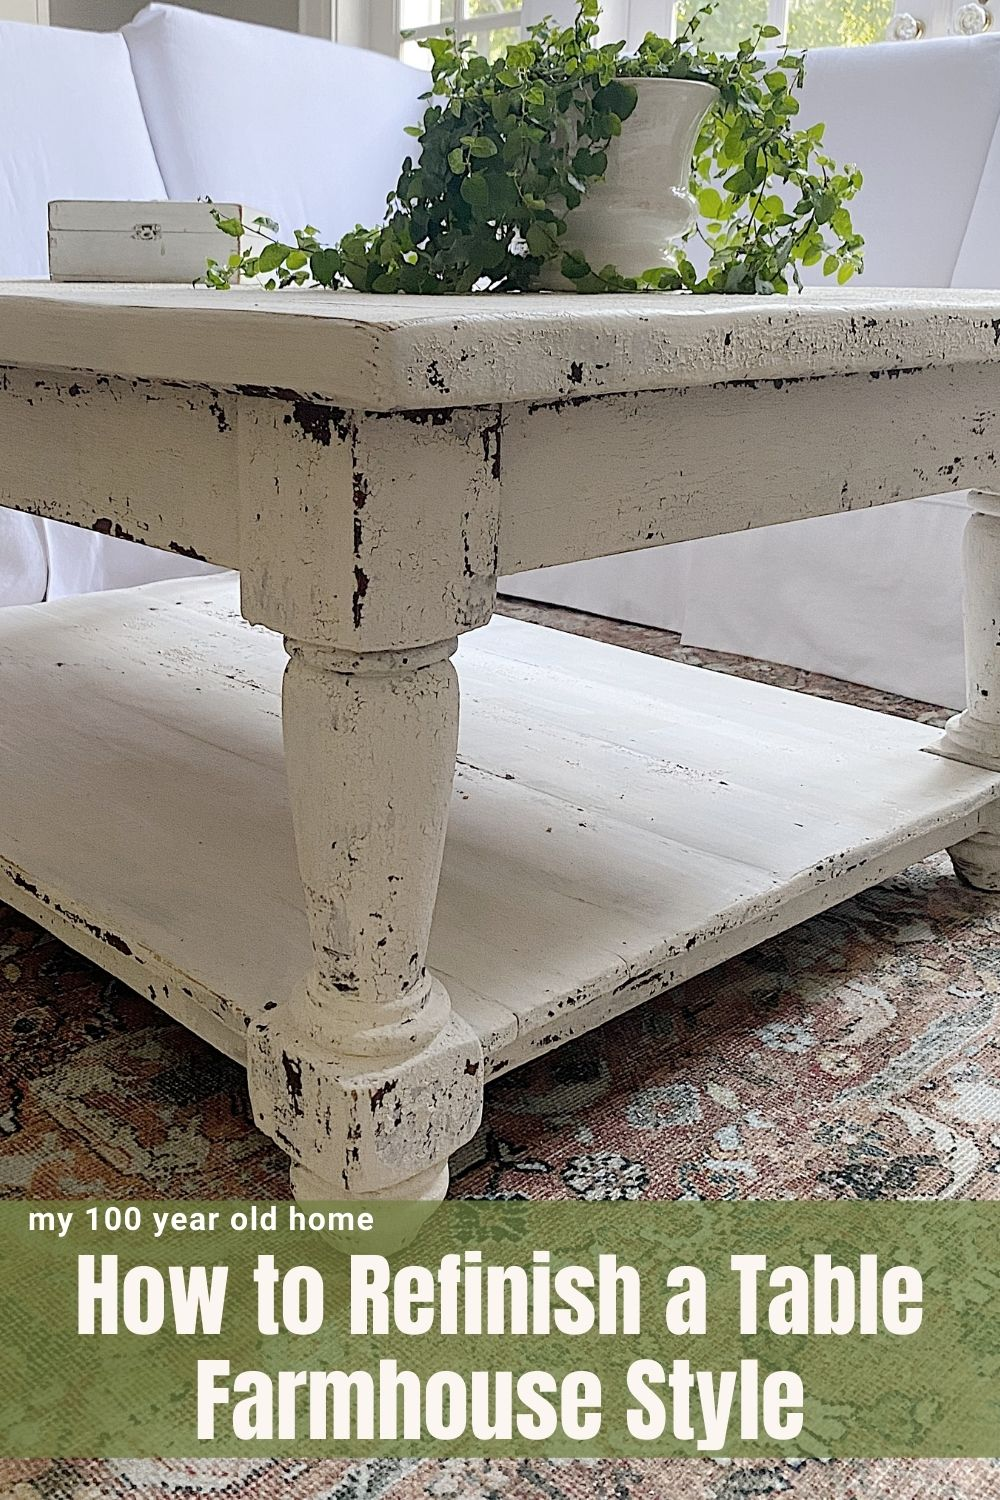 Our family has a long history with this coffee table. I am excited to share how to refinish a table while maintaining its character.